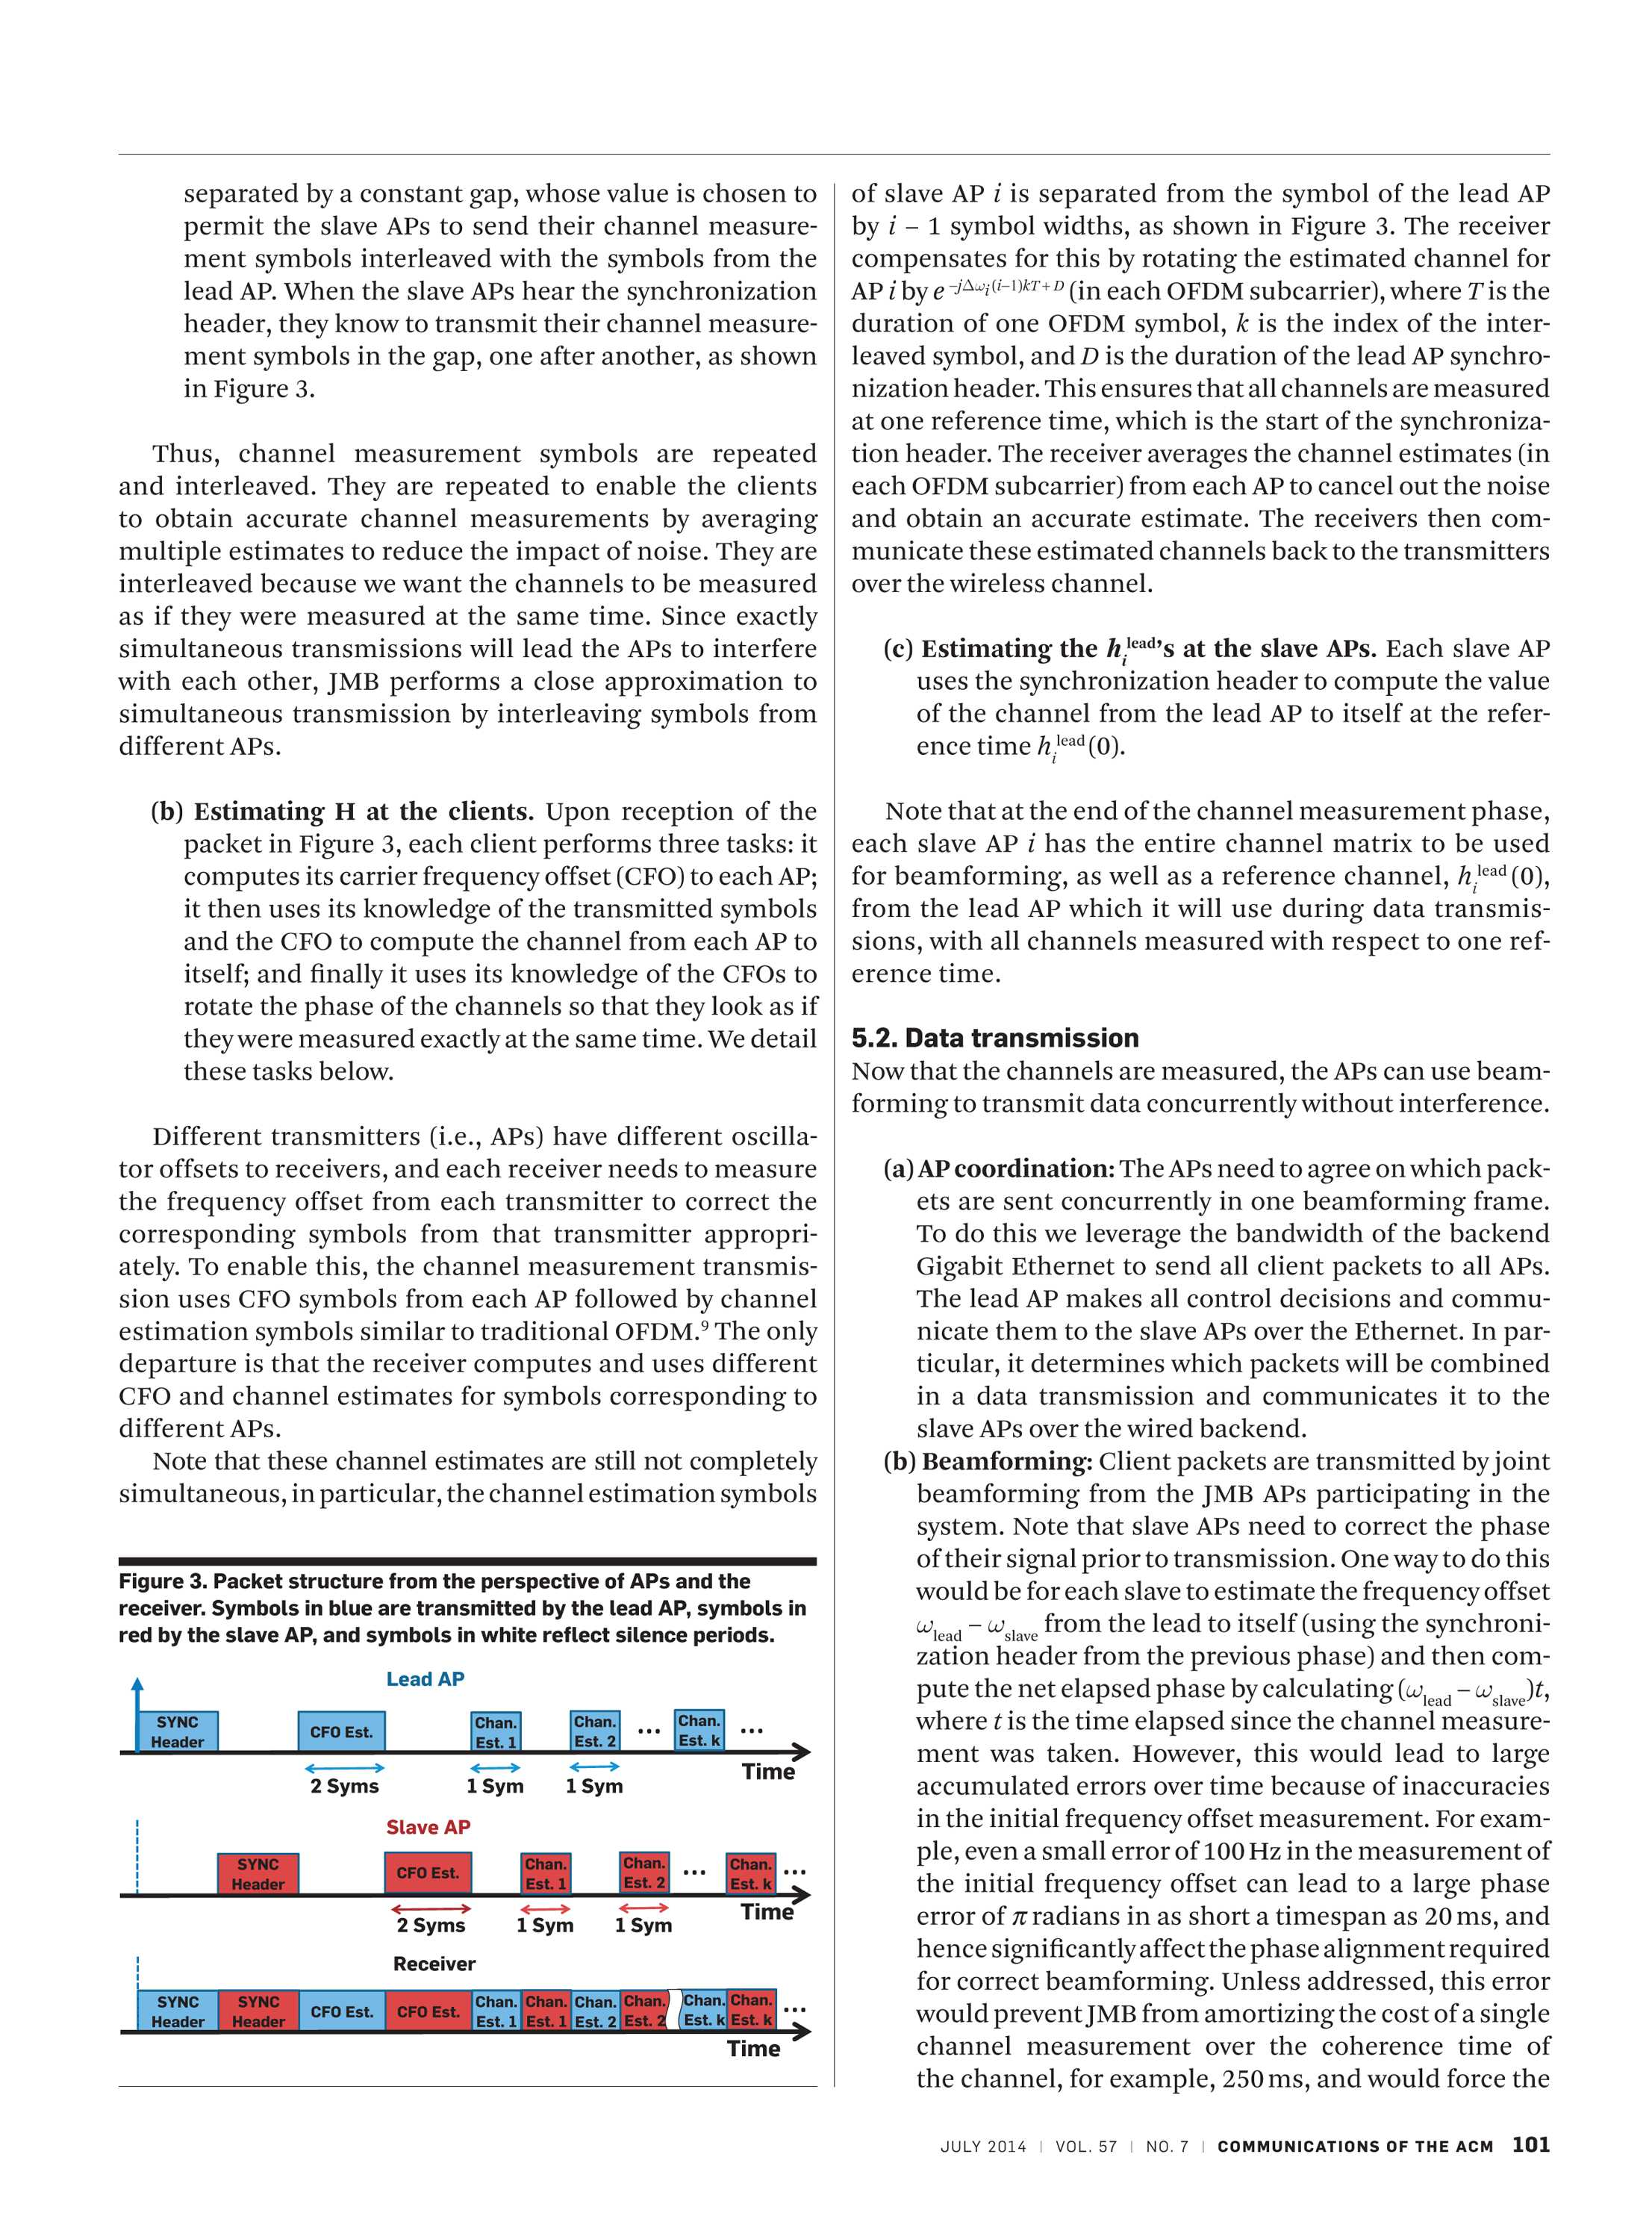 Communications of the ACM - July 2014 - page 101